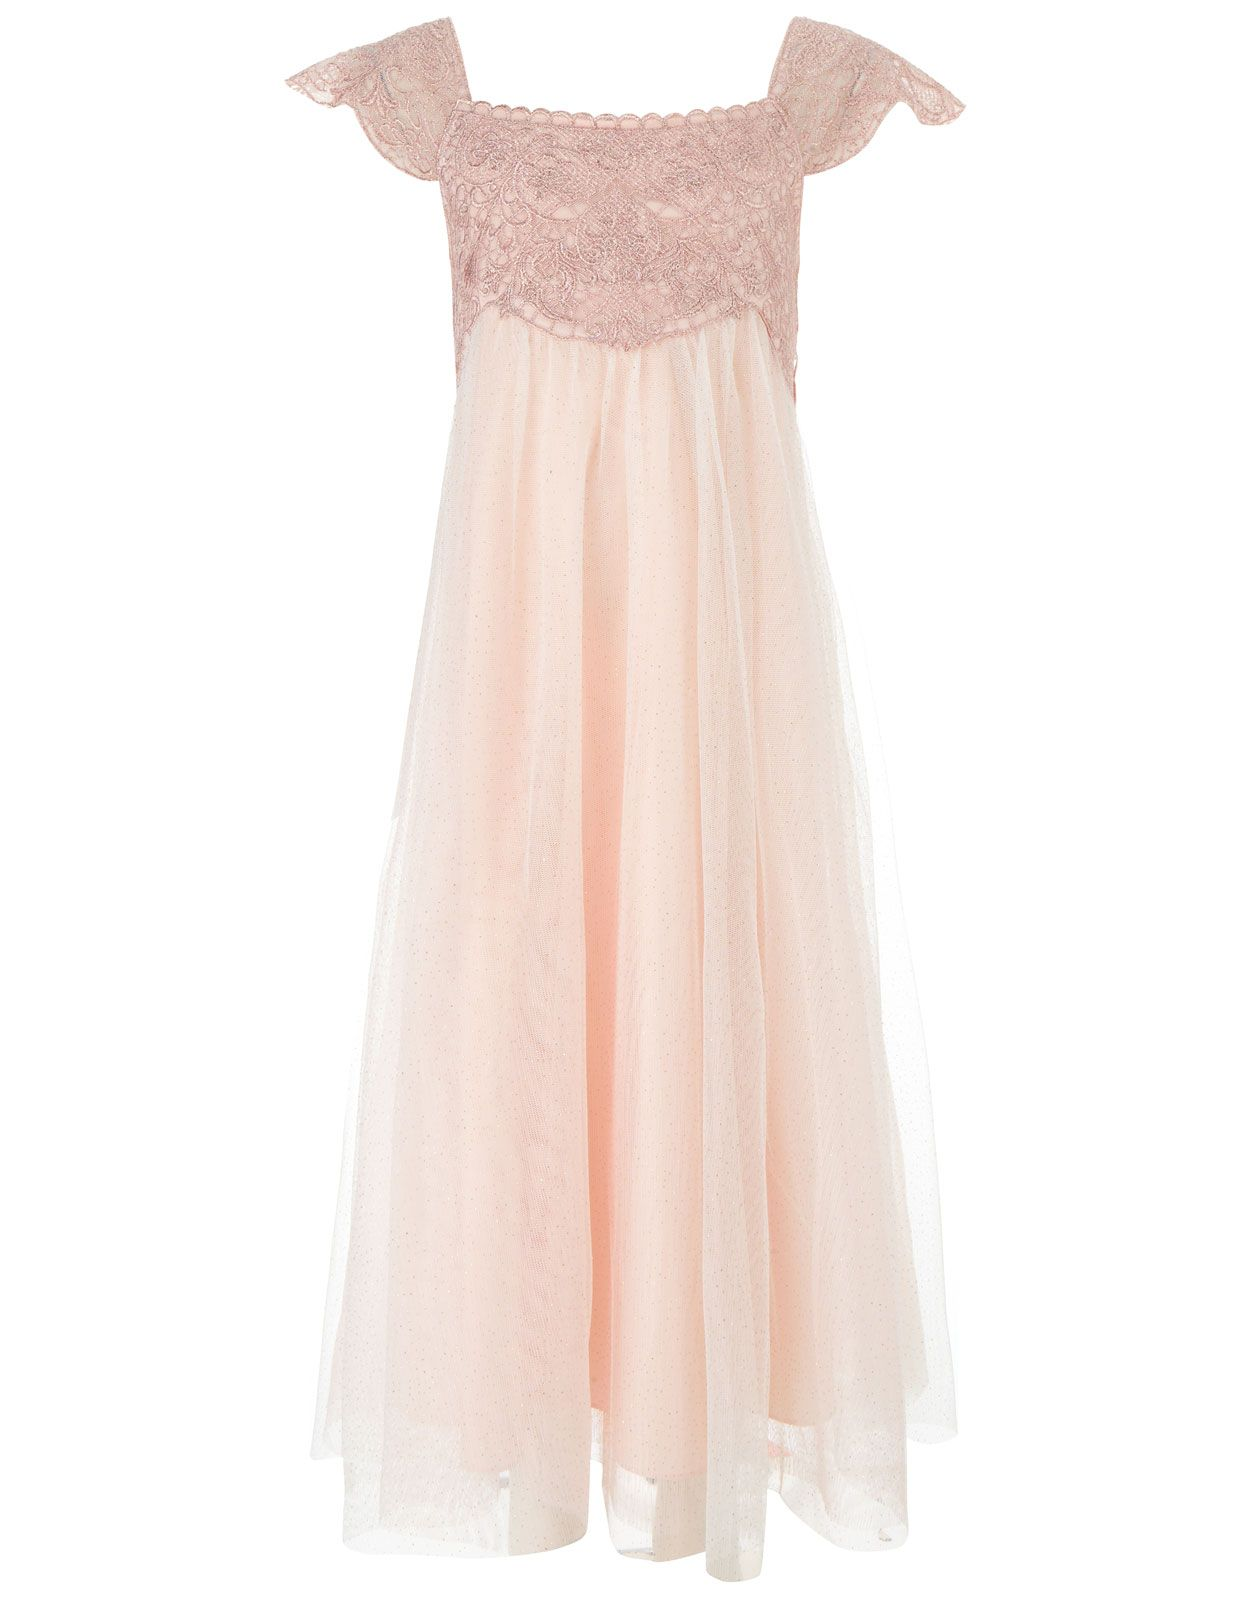 Estella sparkle dress pale pink also comes in ivory fashion